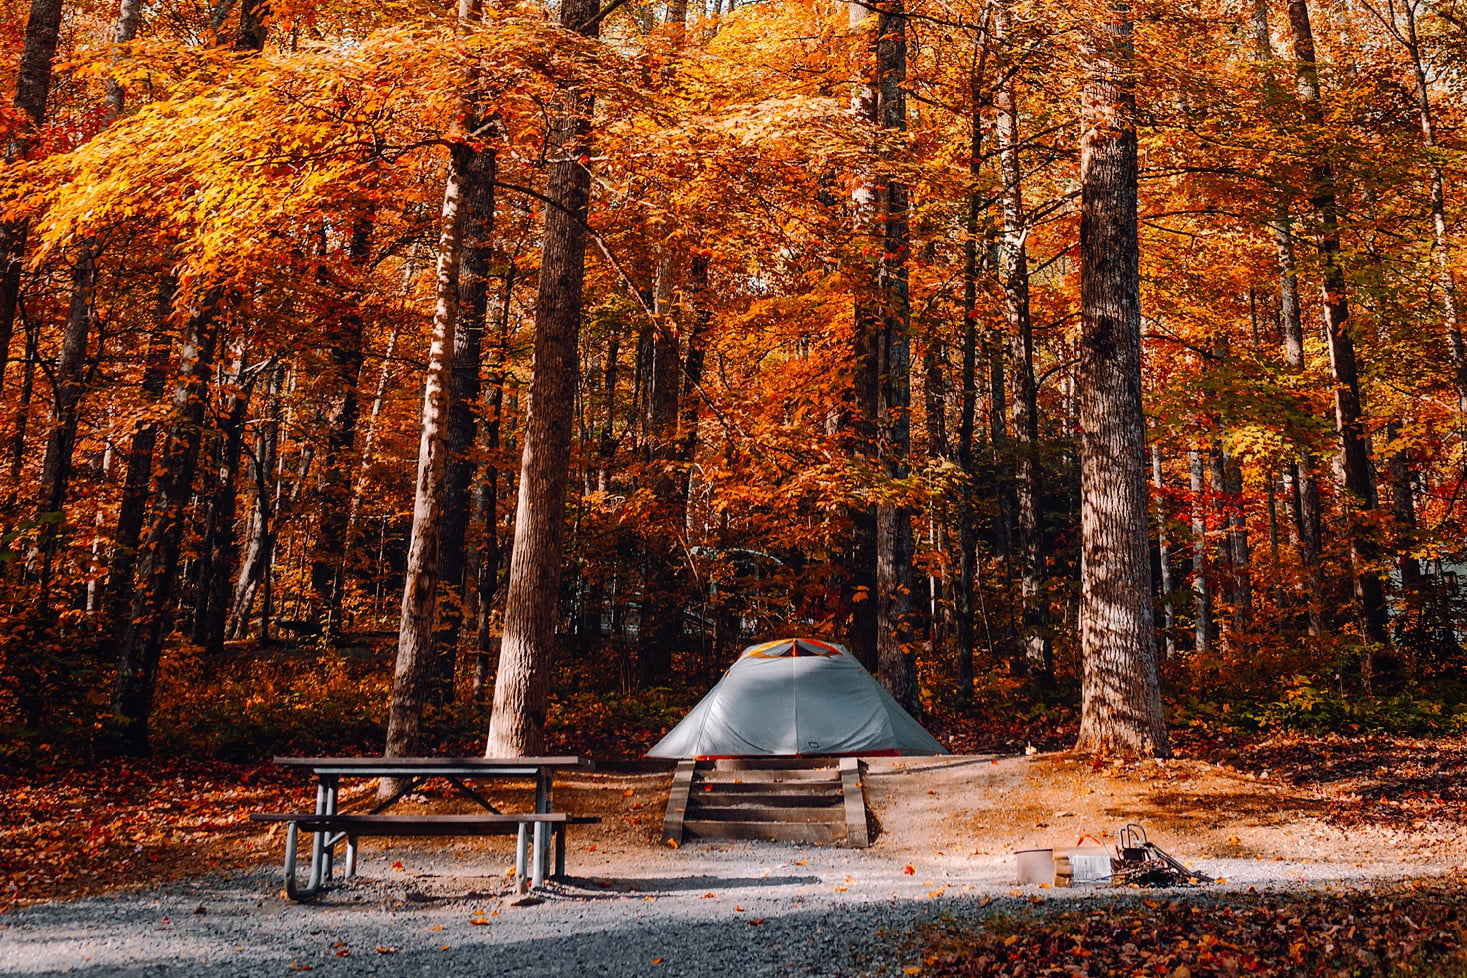 4 Things You'll Want To Pack for Camping in the Fall